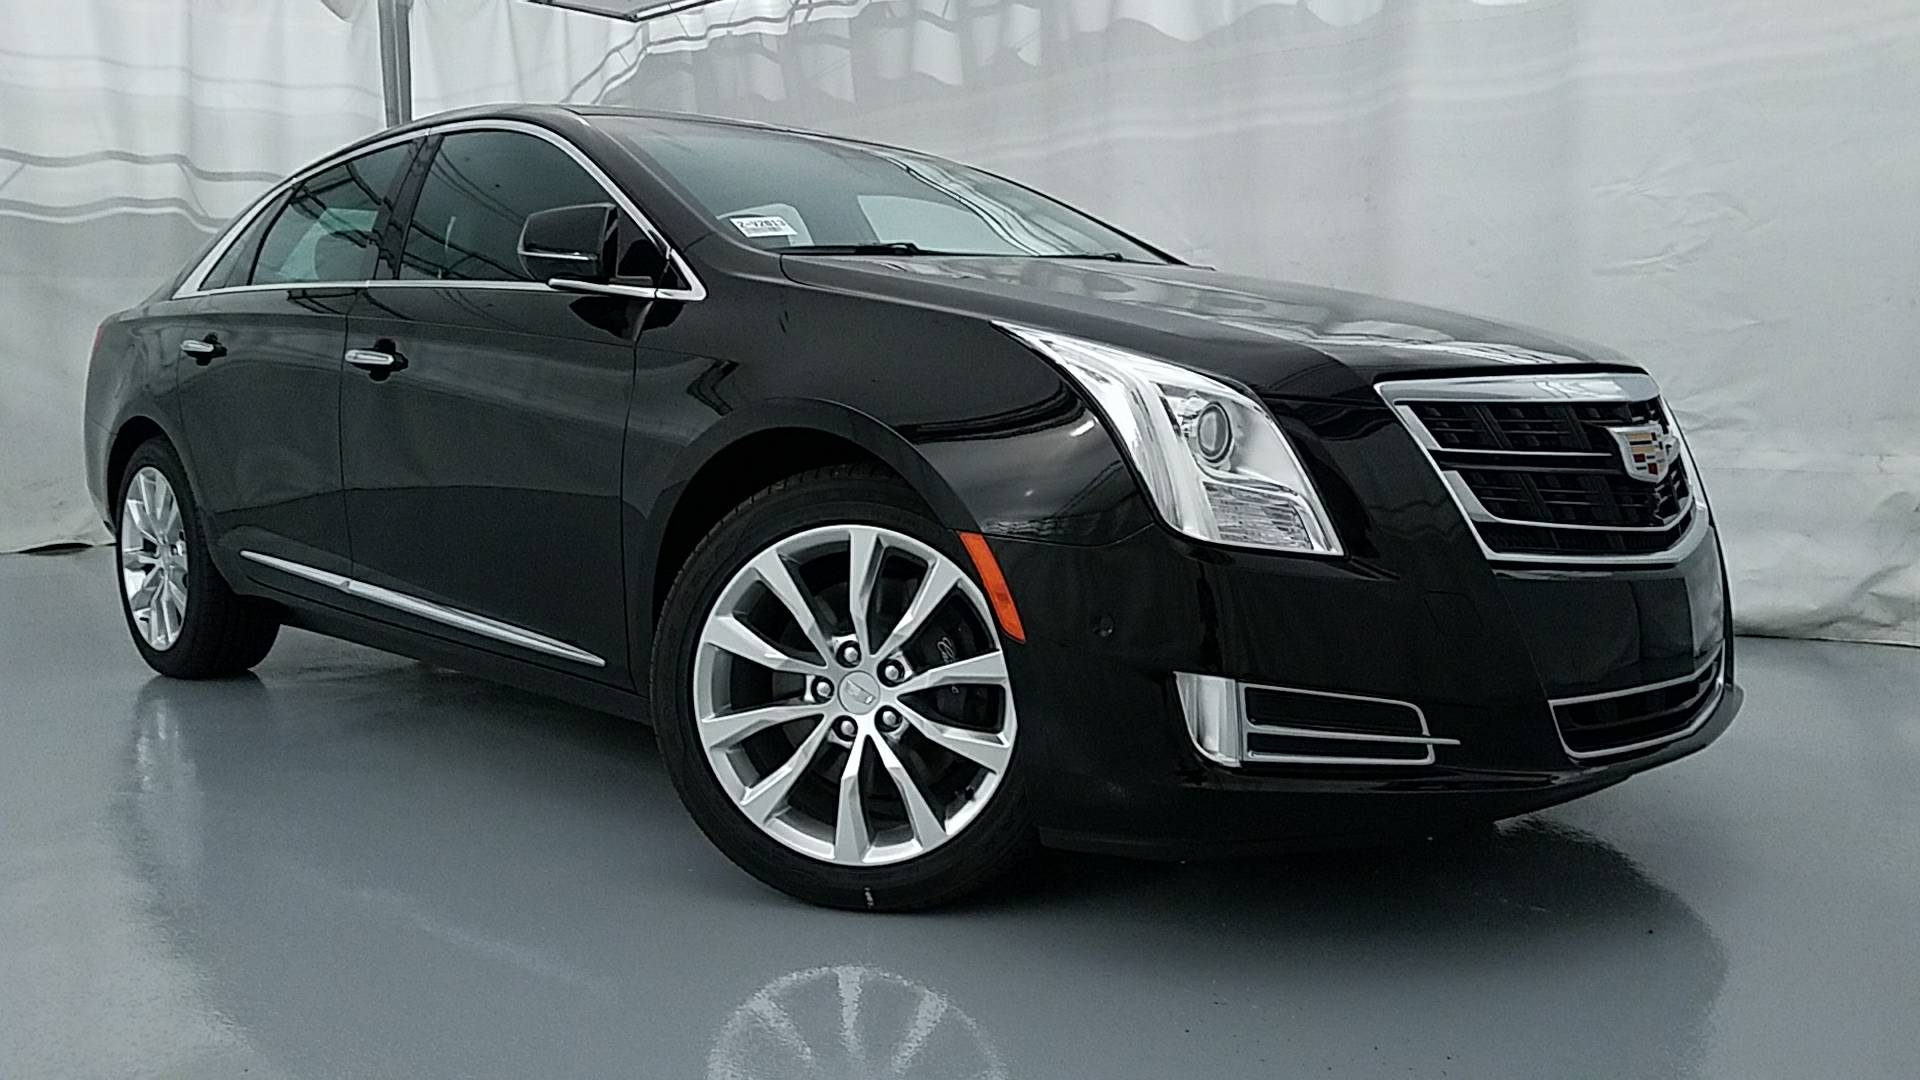 Hammond 2017 Cadillac Vehicles for Sale